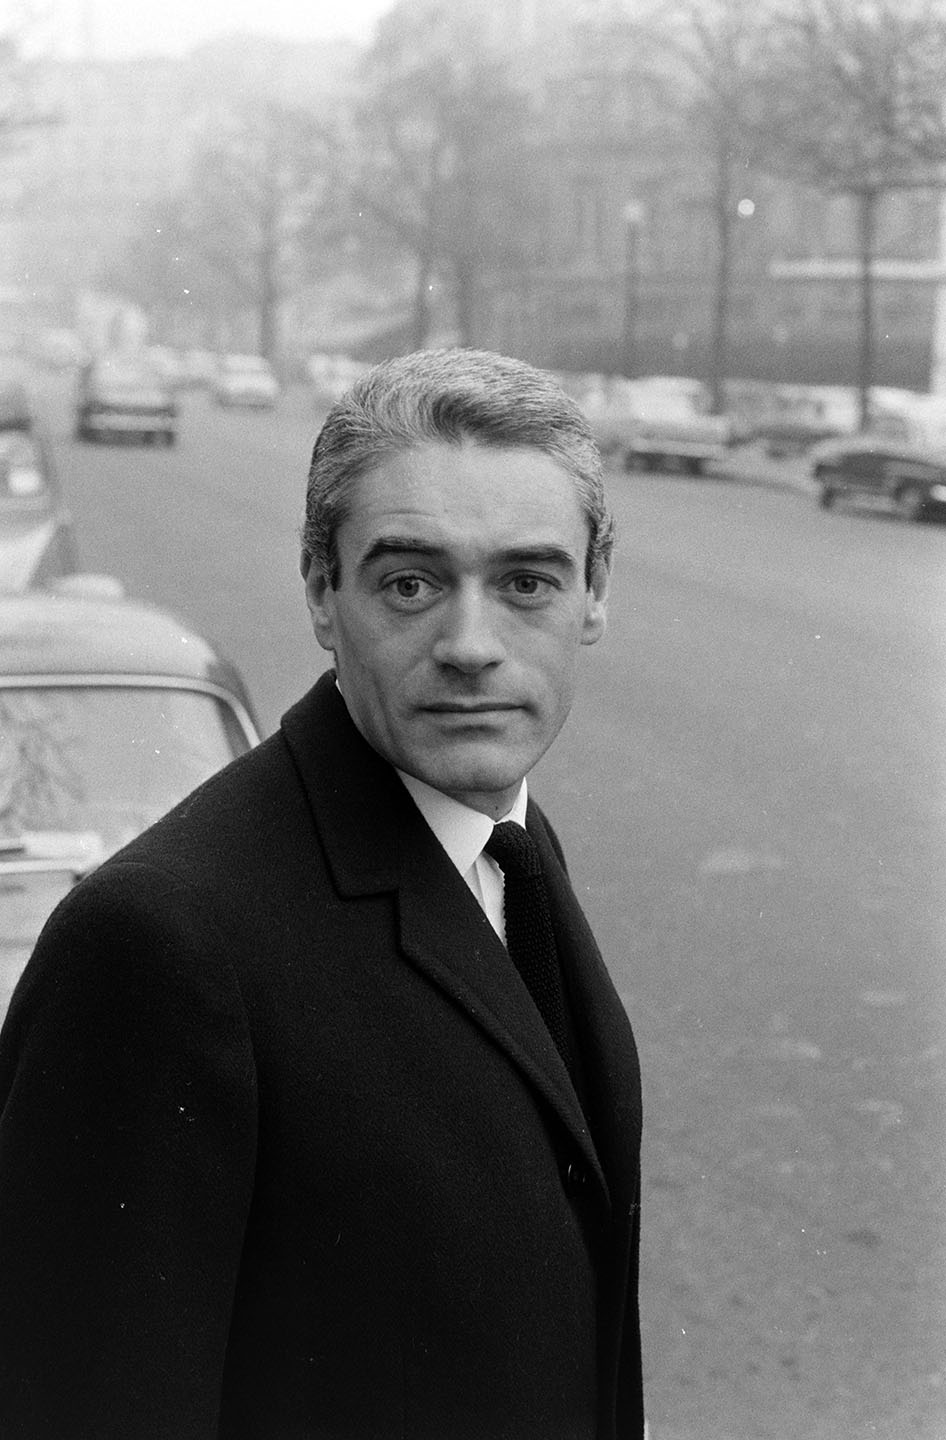 Couturier Philippe Venet photographed in Paris on January 5, 1966.